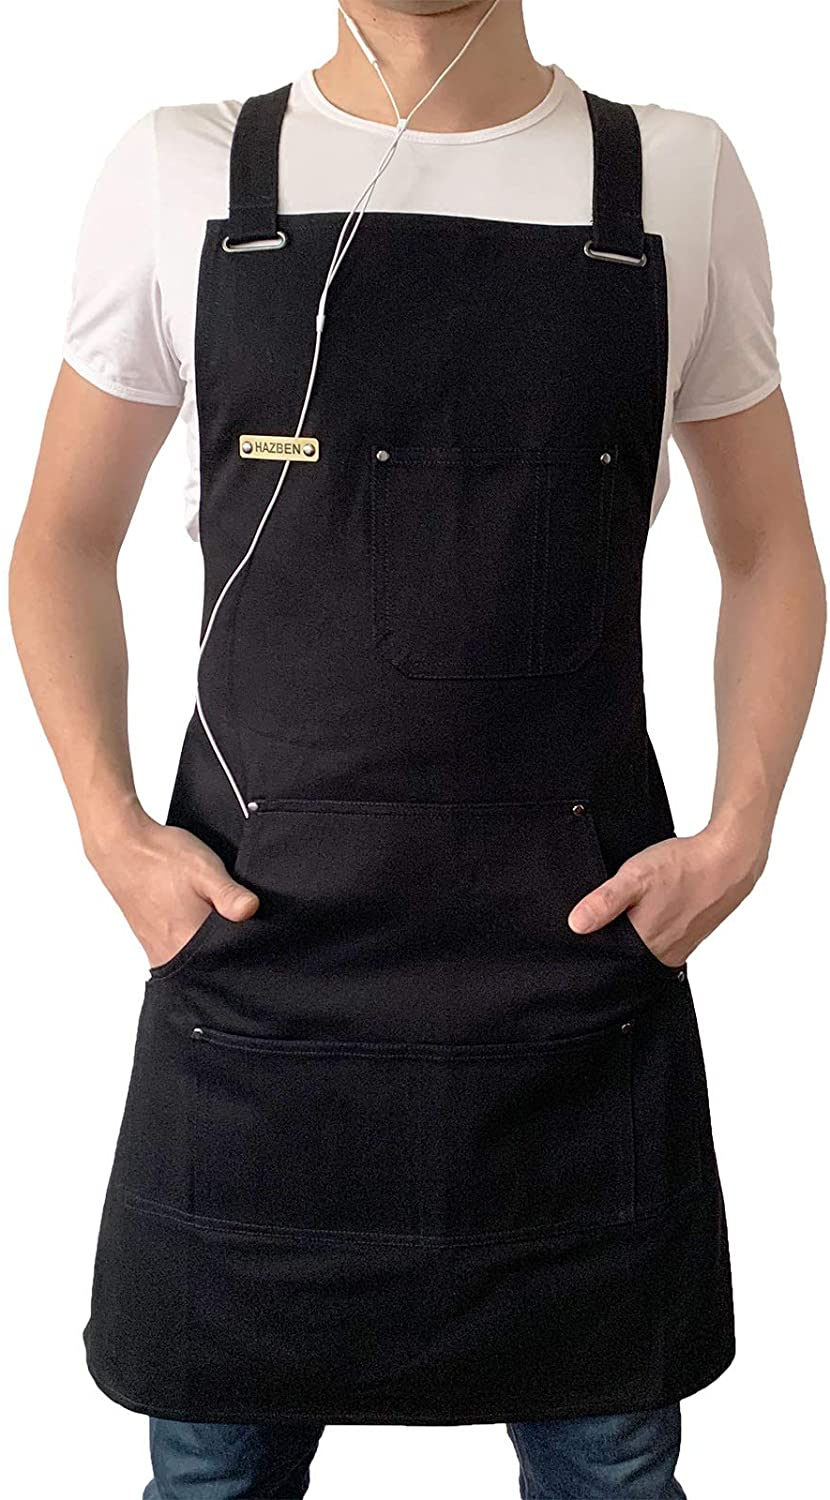 HAZBEN Apron for Men and Women with Tool Pockets, Chef Apron for Kitchen BBQ Grill Black Towel Loop, Woodworking Apron for Welding Grilling Metalwork, Quick Release Buckle, Adjustable M to XXL